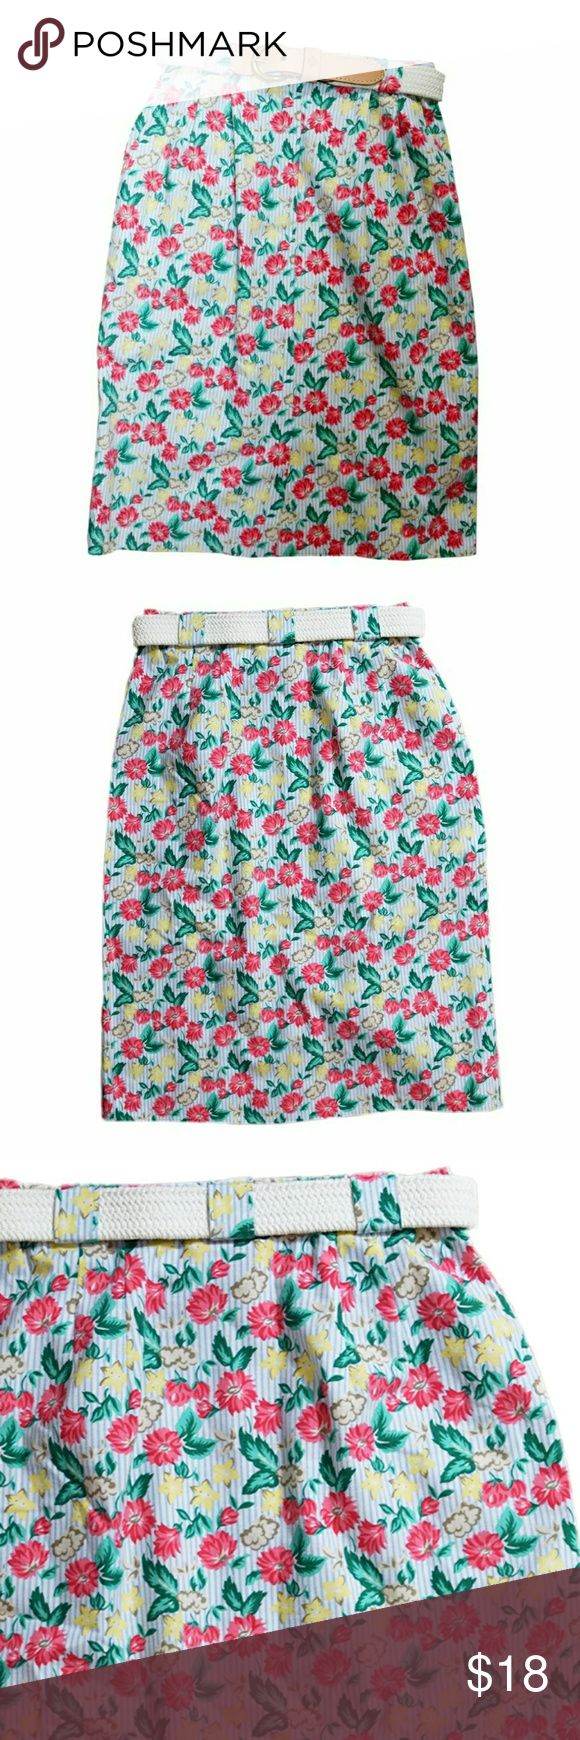 Vintage Pendleton Sophisticates Floral Skirt Vintage Pendleton Sophisticates Floral Skirt. 75 % Cotton, 25 % Polyester. Pockets!!! Size 4 Petite. Belt not original to skirt, but is included with purchase of skirt! Vintage Skirts